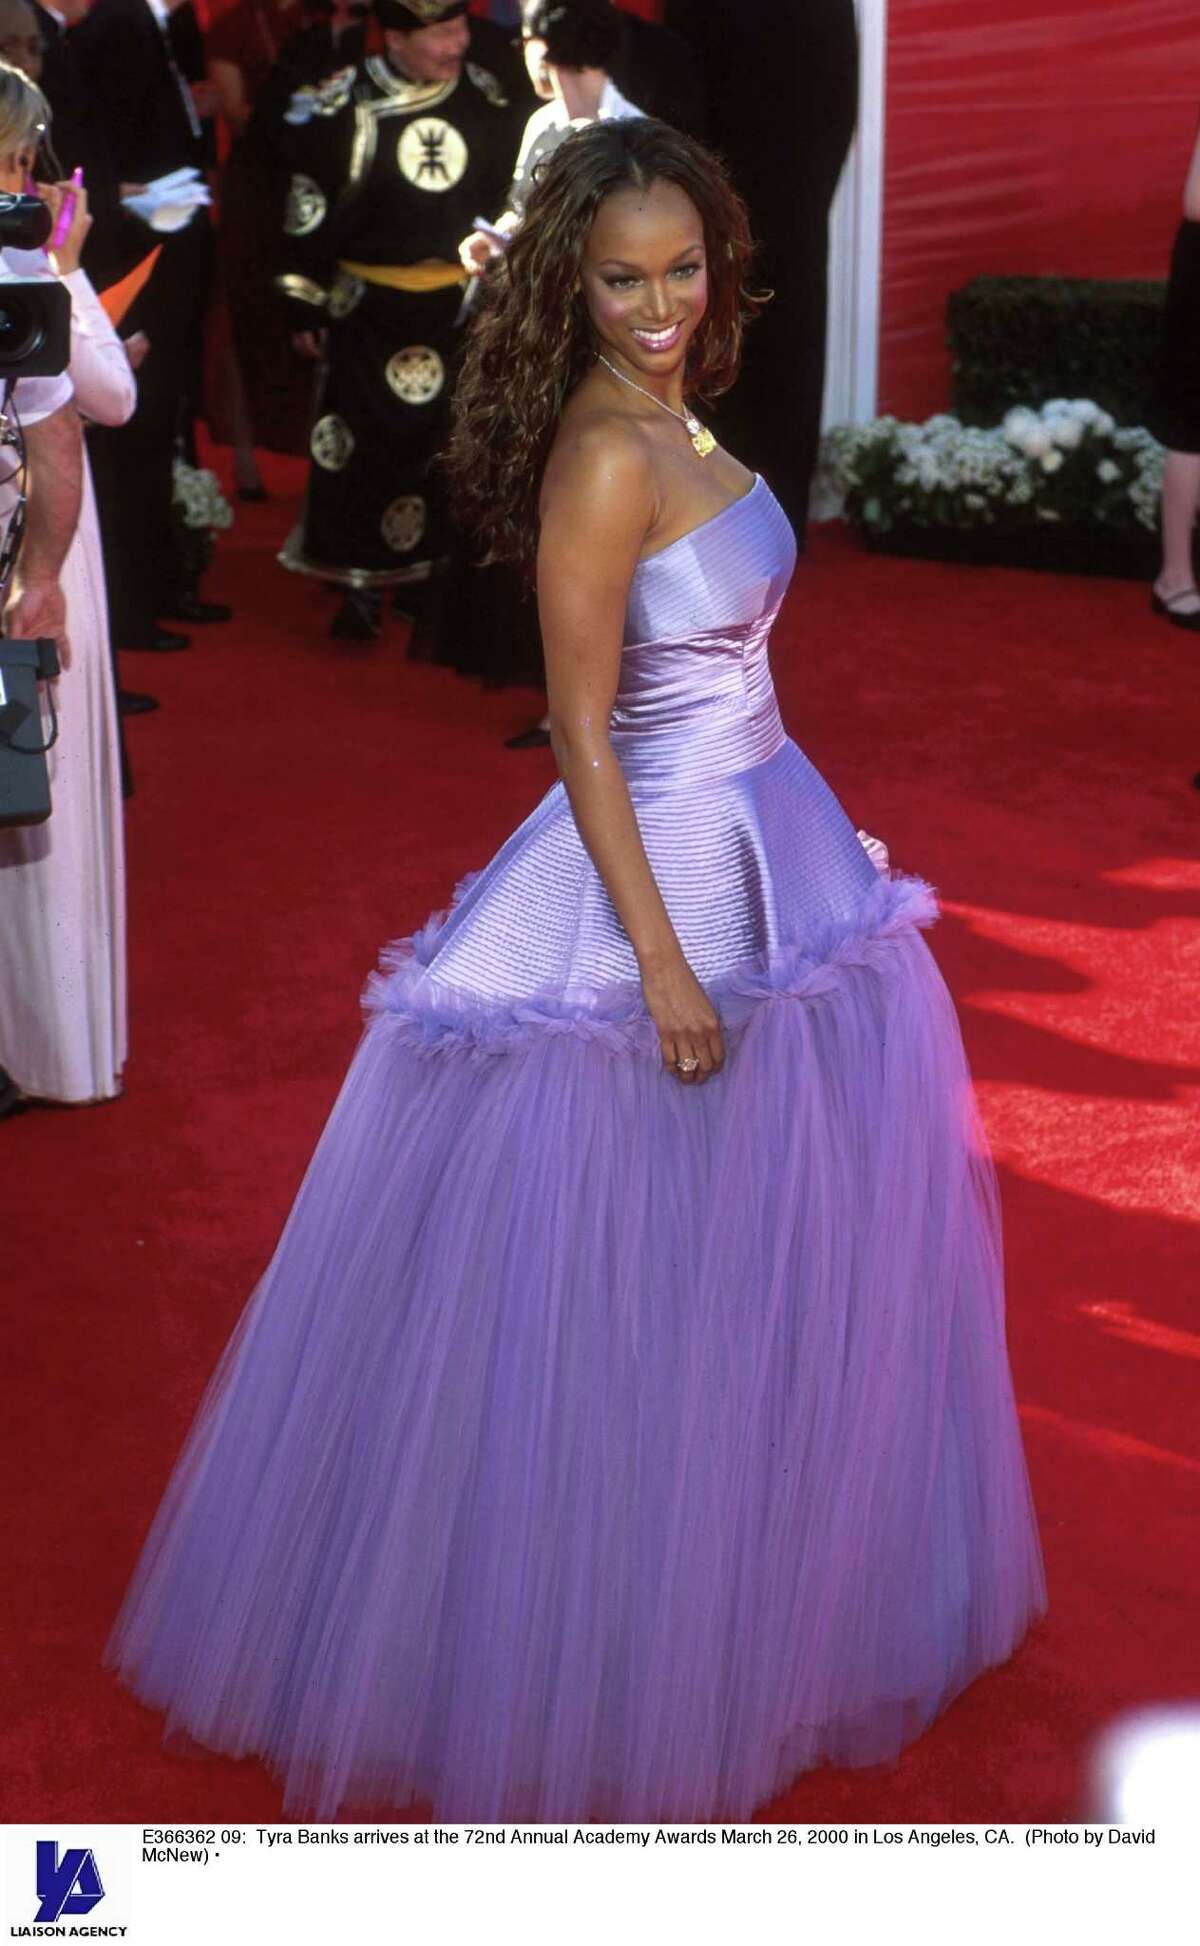 8. Tyra Banks, 2000 Cue the quinceanera music because here comes America's ex-top model in a purple Vera Wang tulle gown that was headed to debut, not the Oscars.